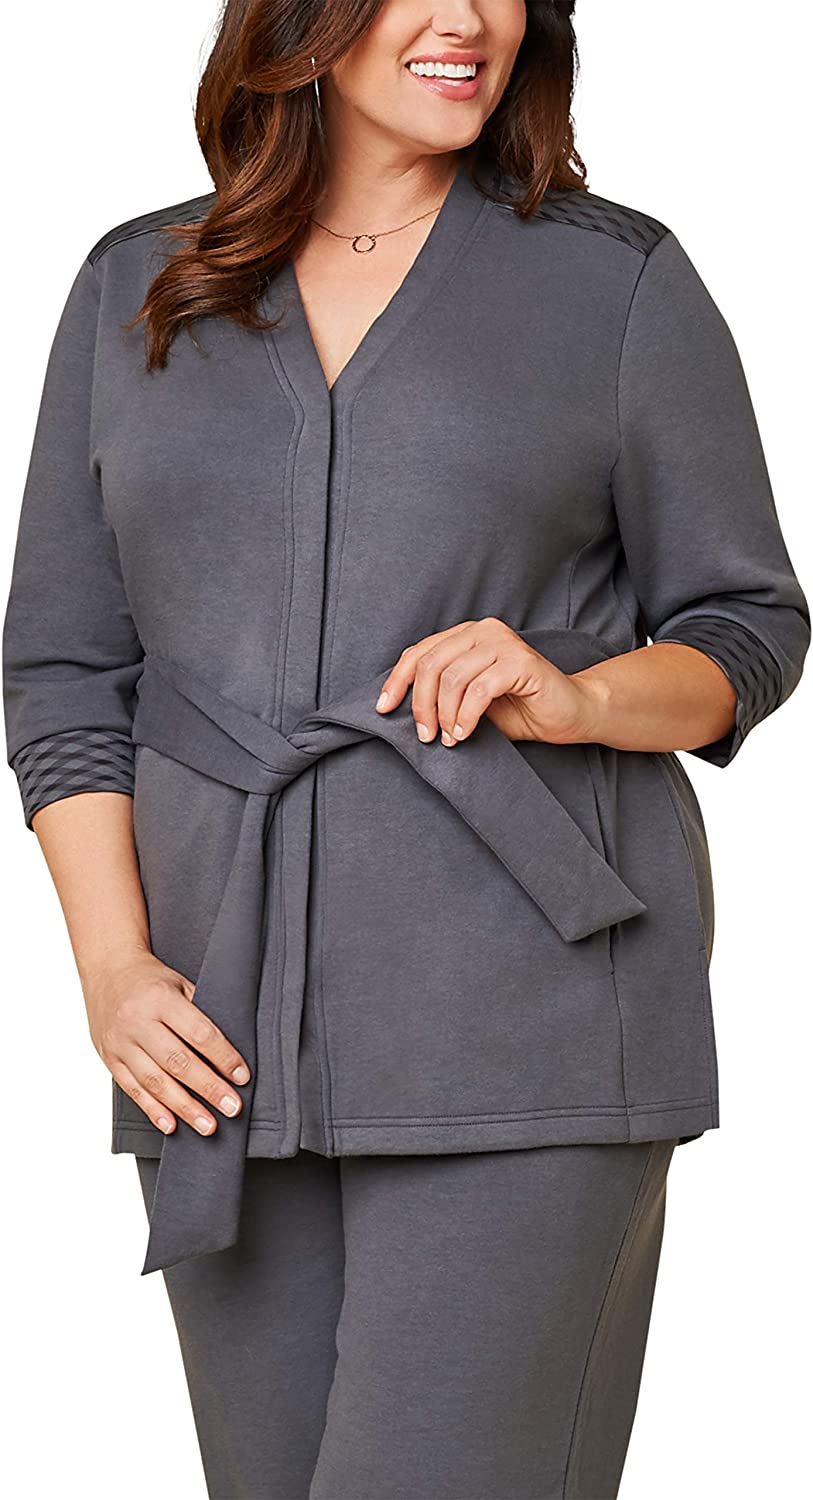 Seek No Further by Fruit of the Loom Super New product!! beauty product restock quality top Slee Plus ¾ Women's Size